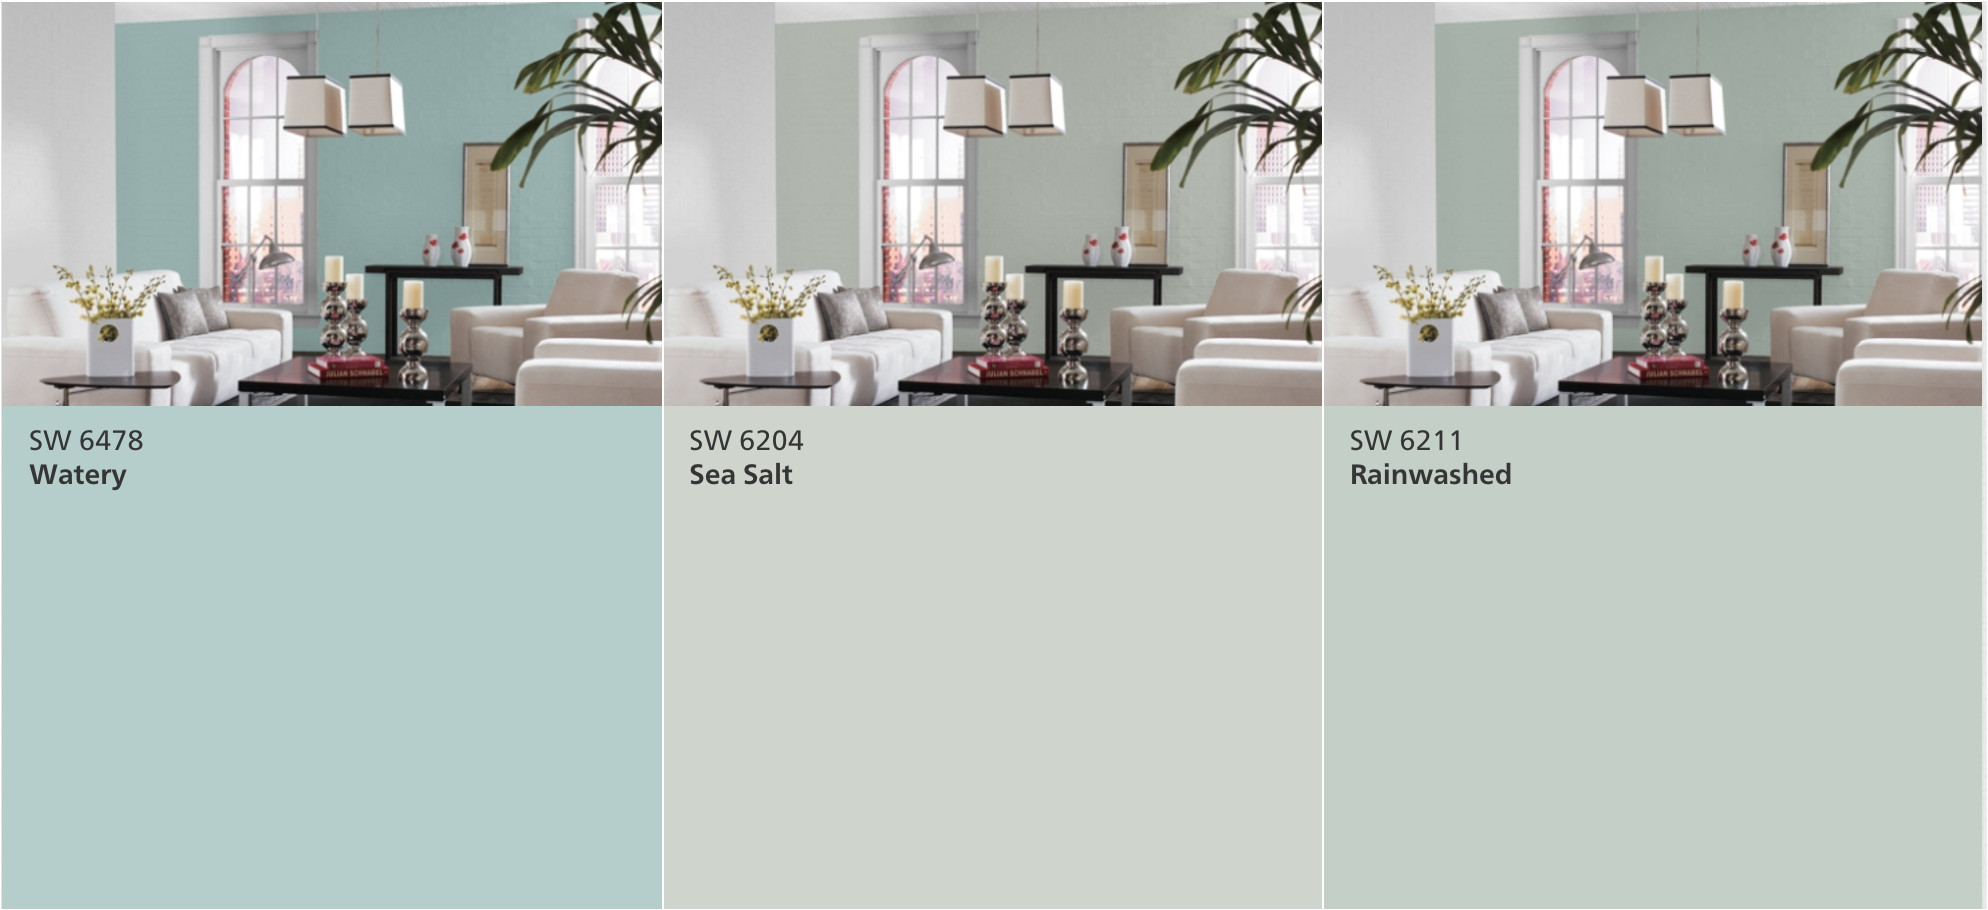 sherwin williams watery vs sea salt vs rainwashed real life results went with